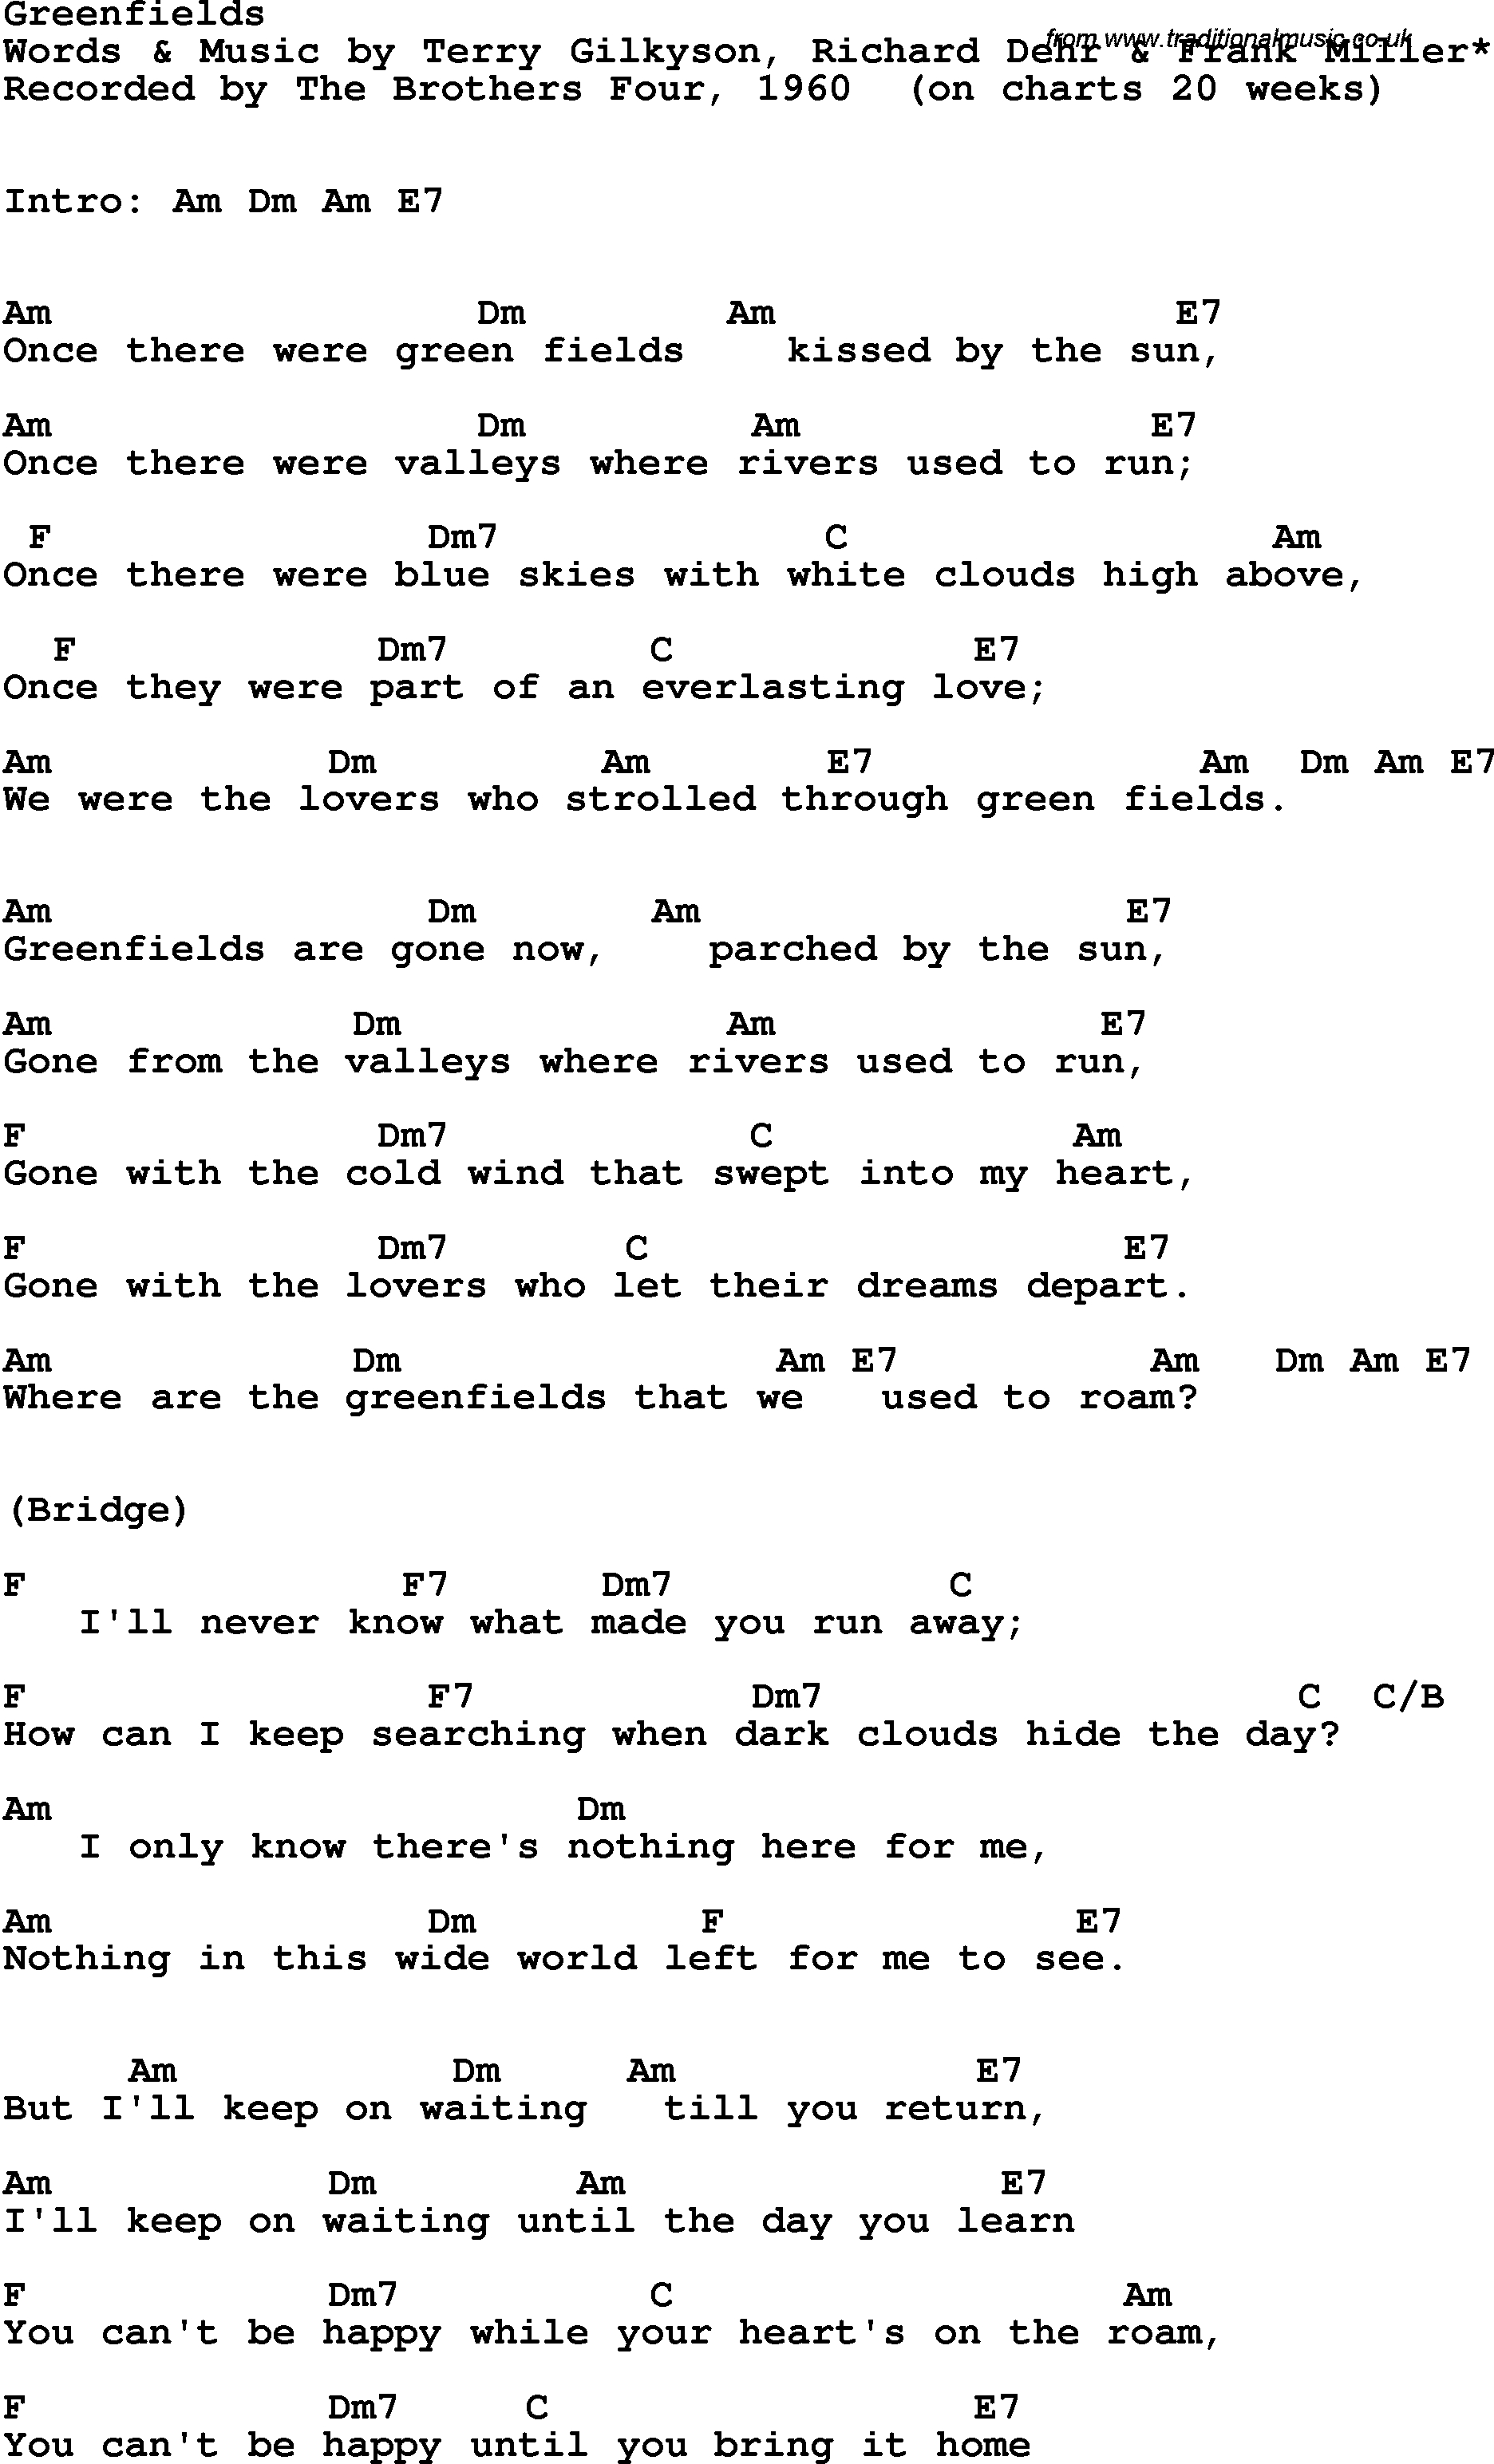 Four Chord Song Song Lyrics With Guitar Chords For Greenfields The Brothers Four 1960